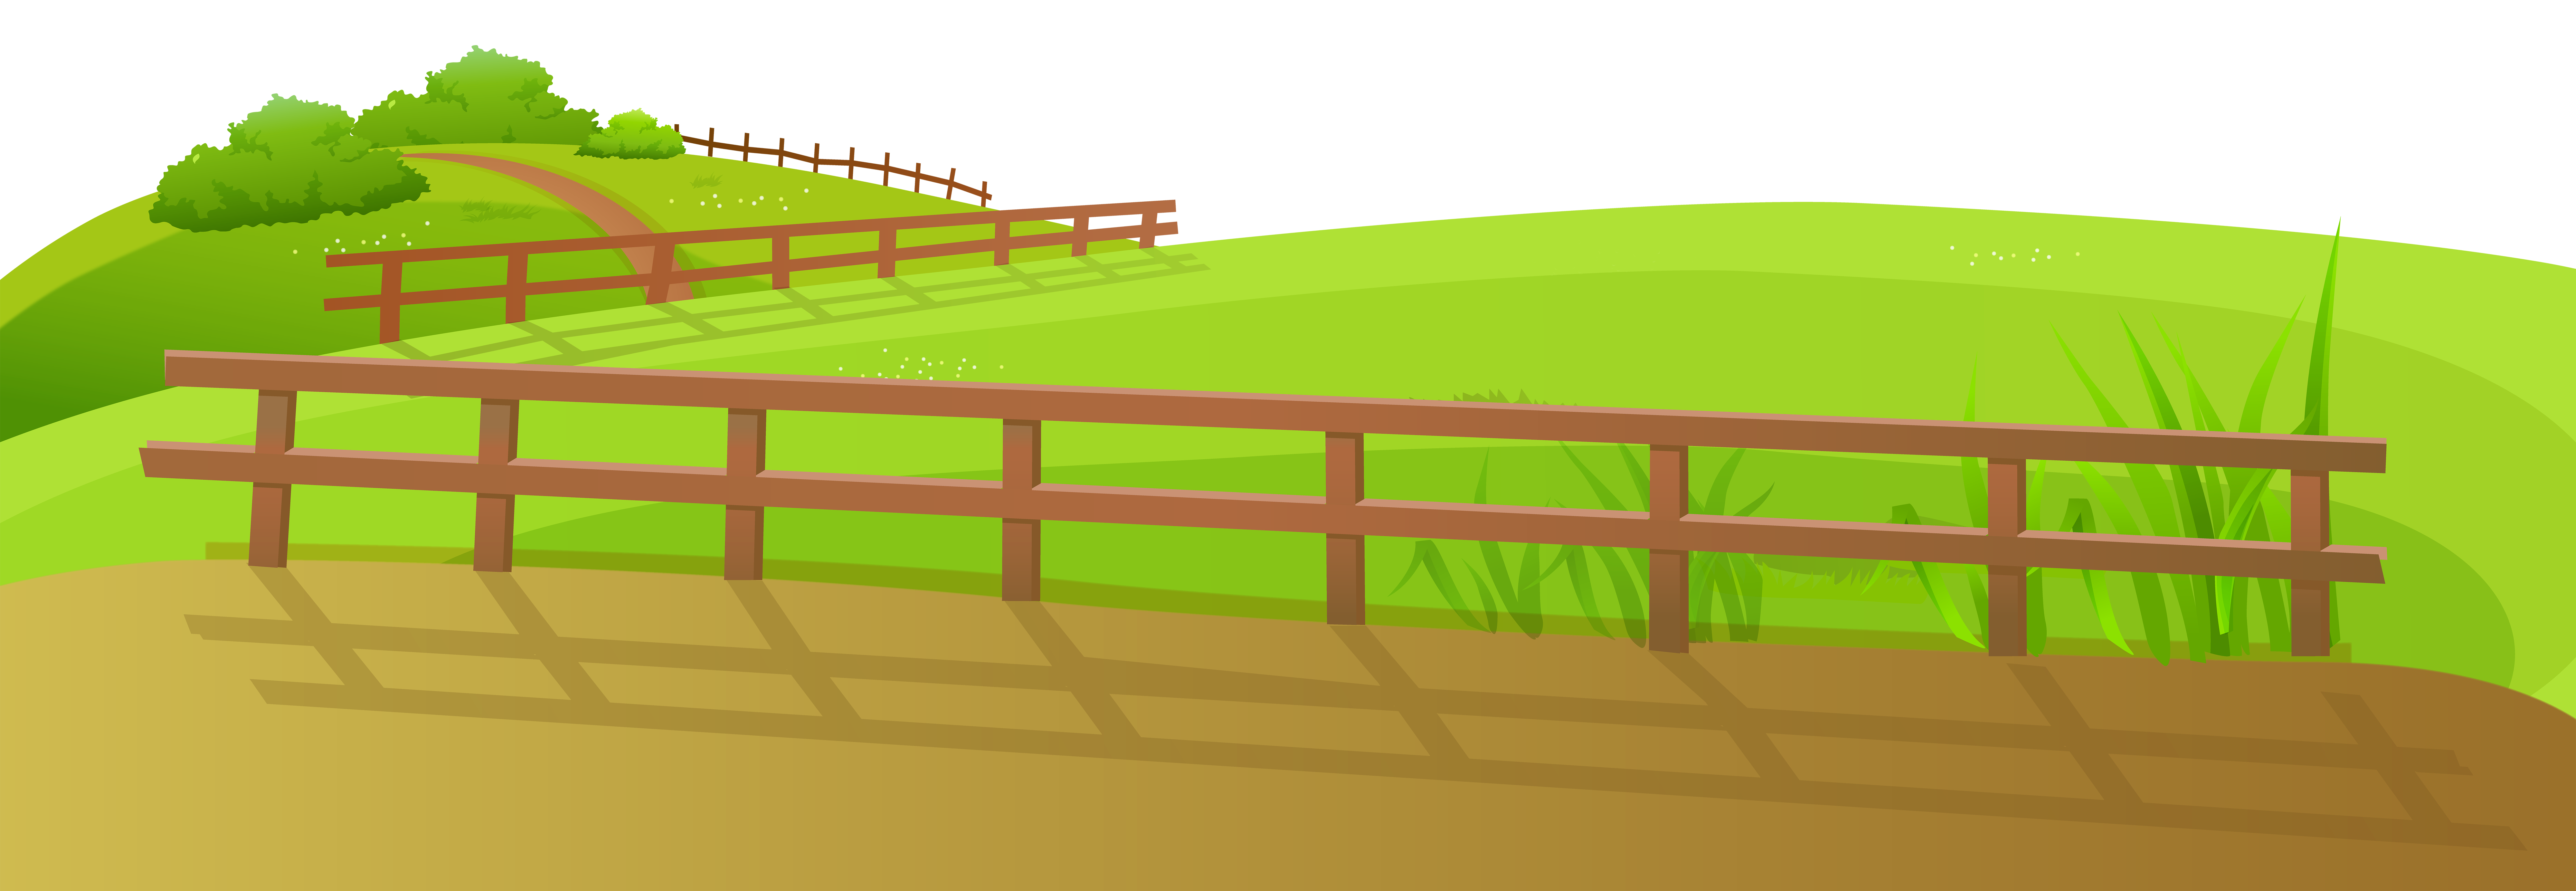 Fence clipart barn fence. Grass ground with png